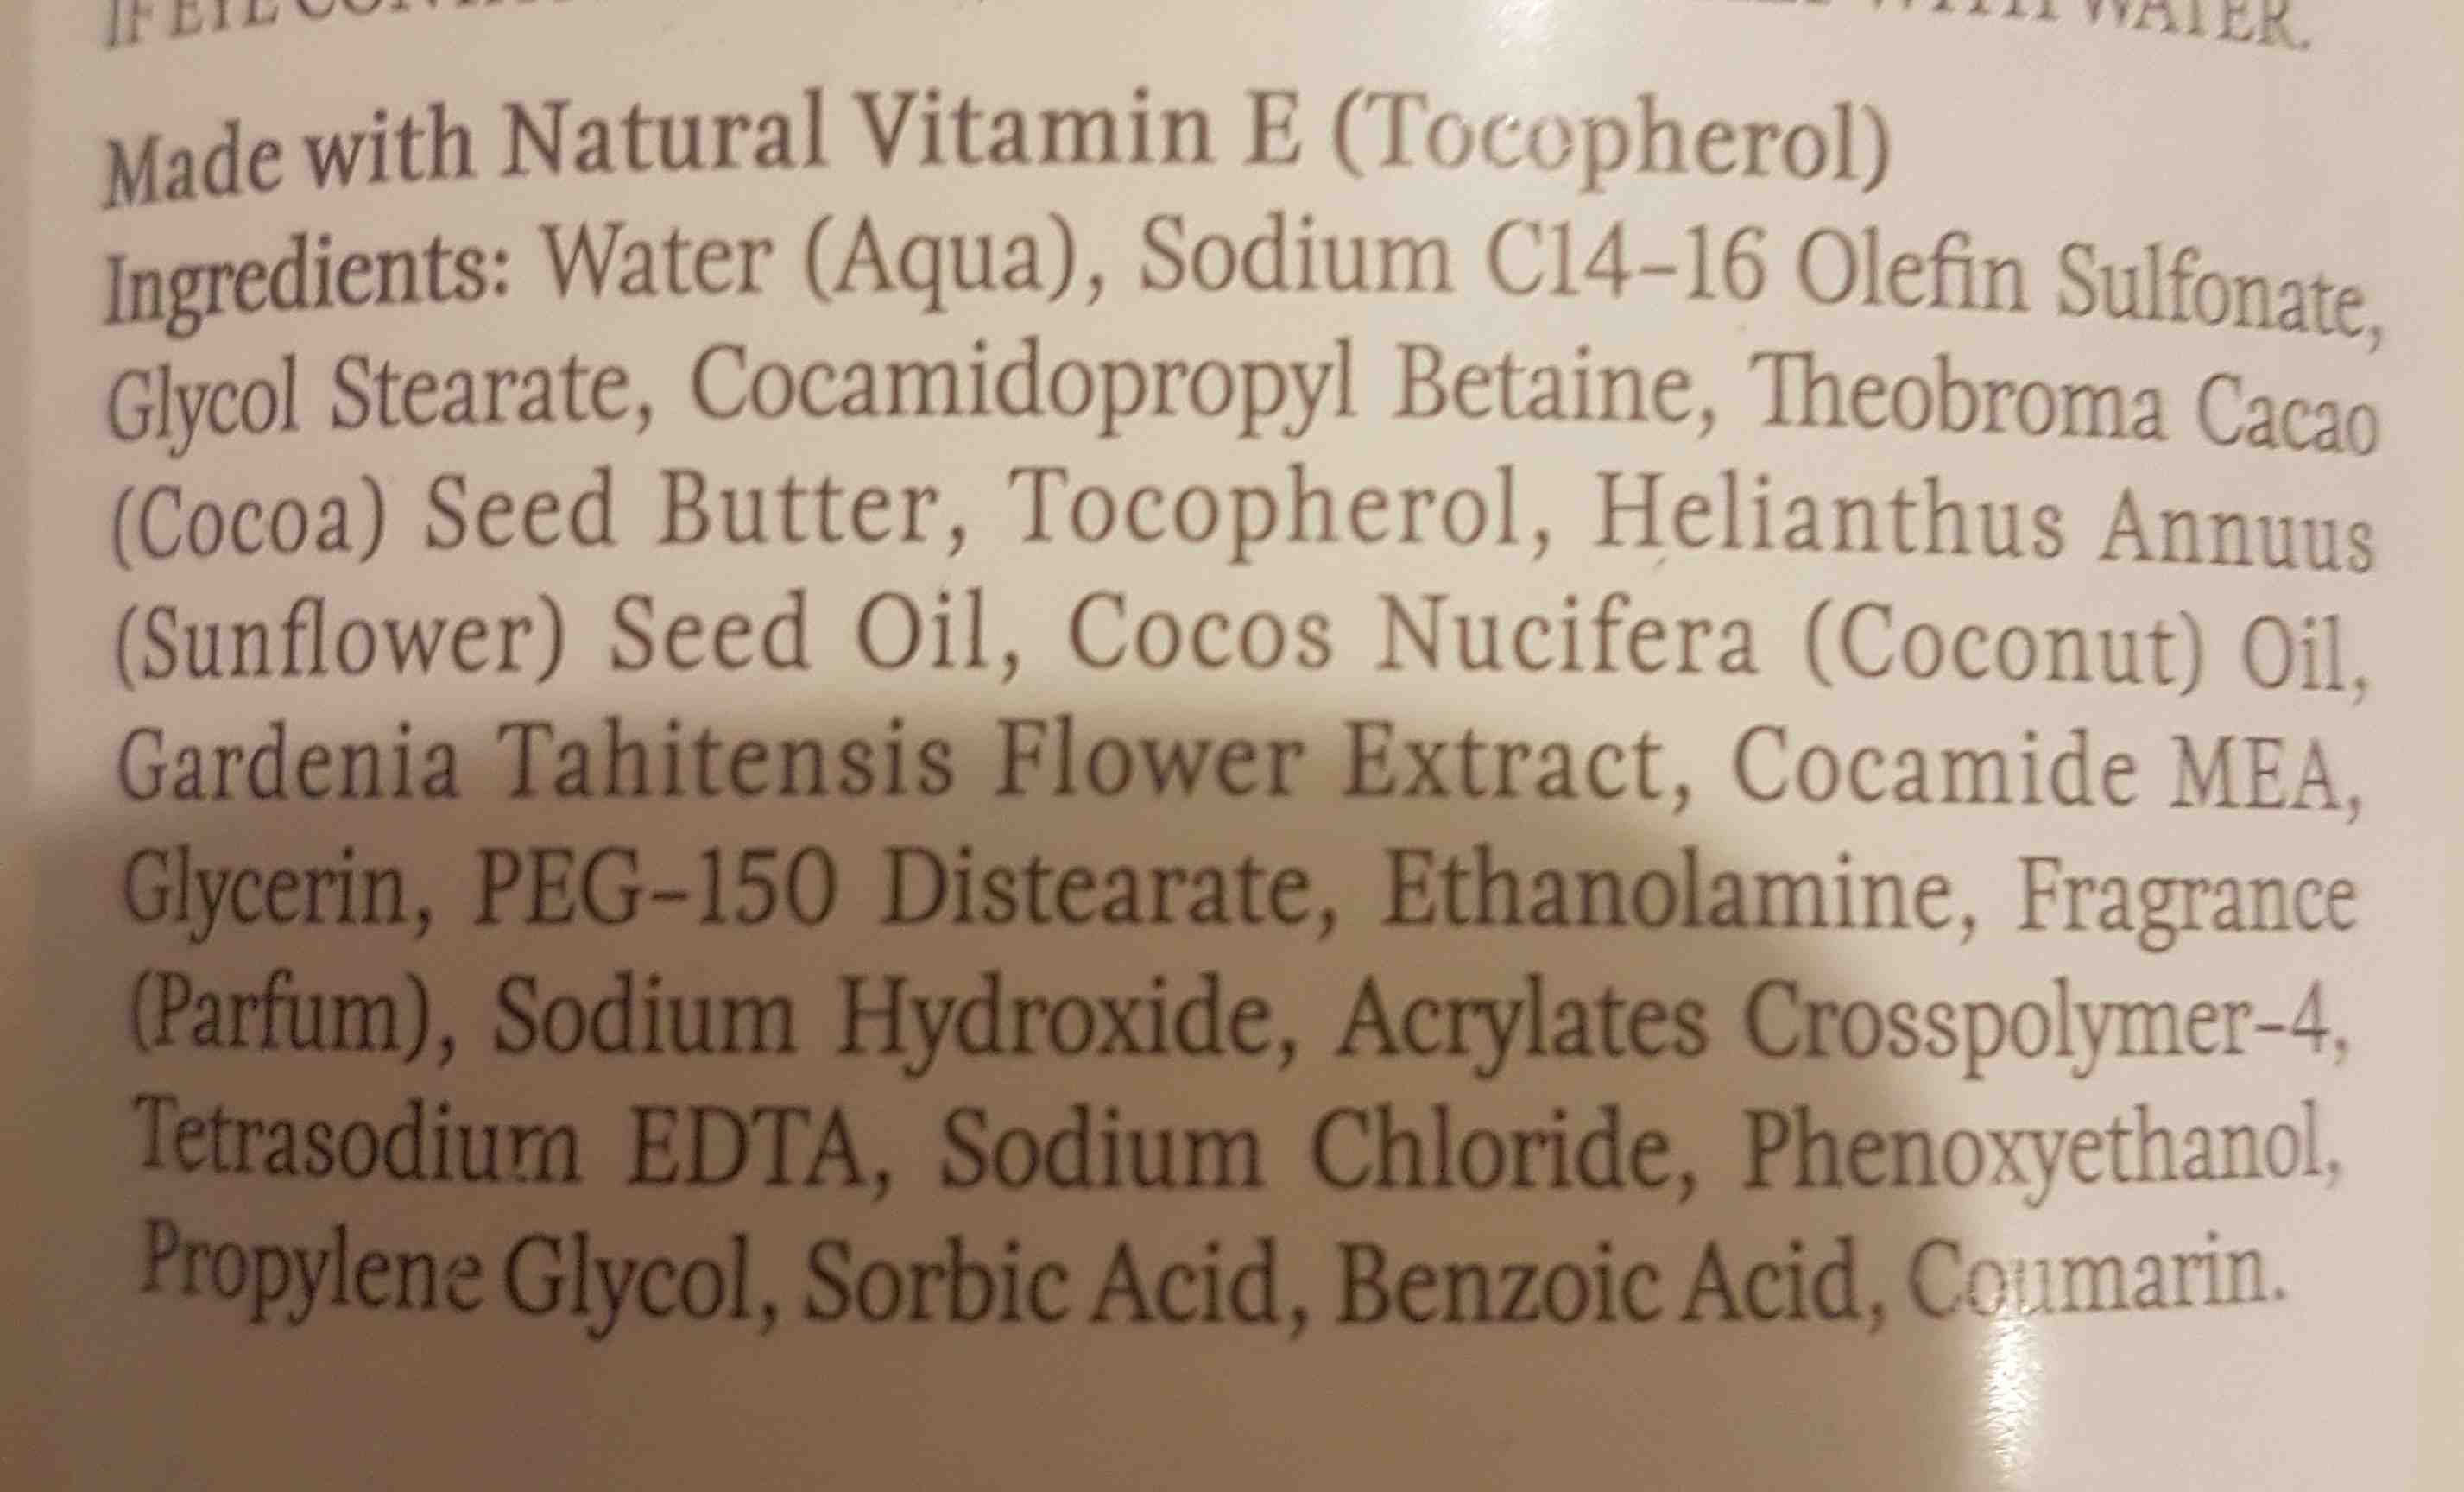 palmers coconut oil formula - Ingredients